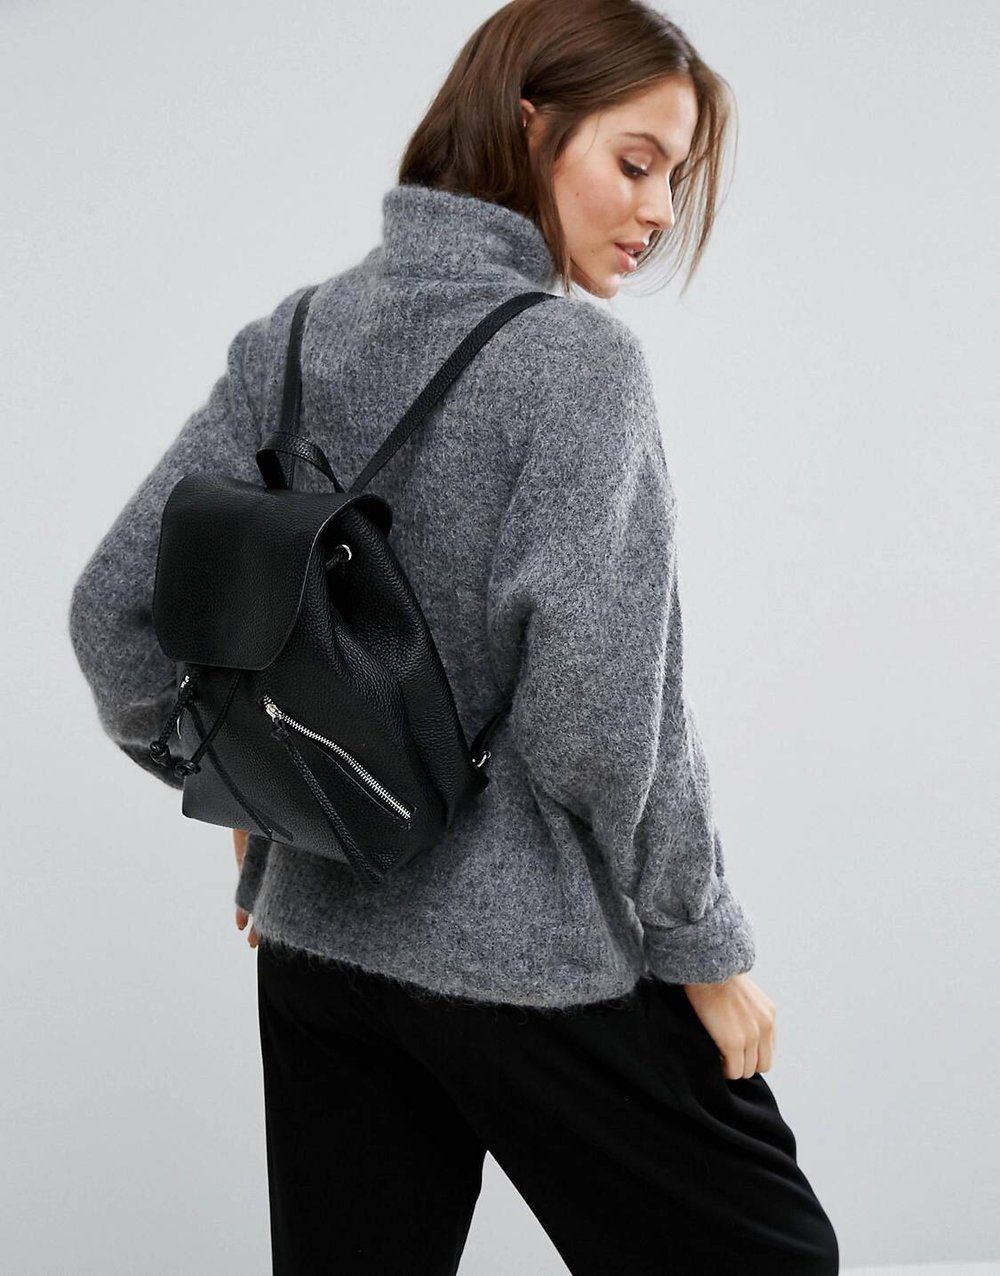 Issa another backpack - Perfect airport accessories.